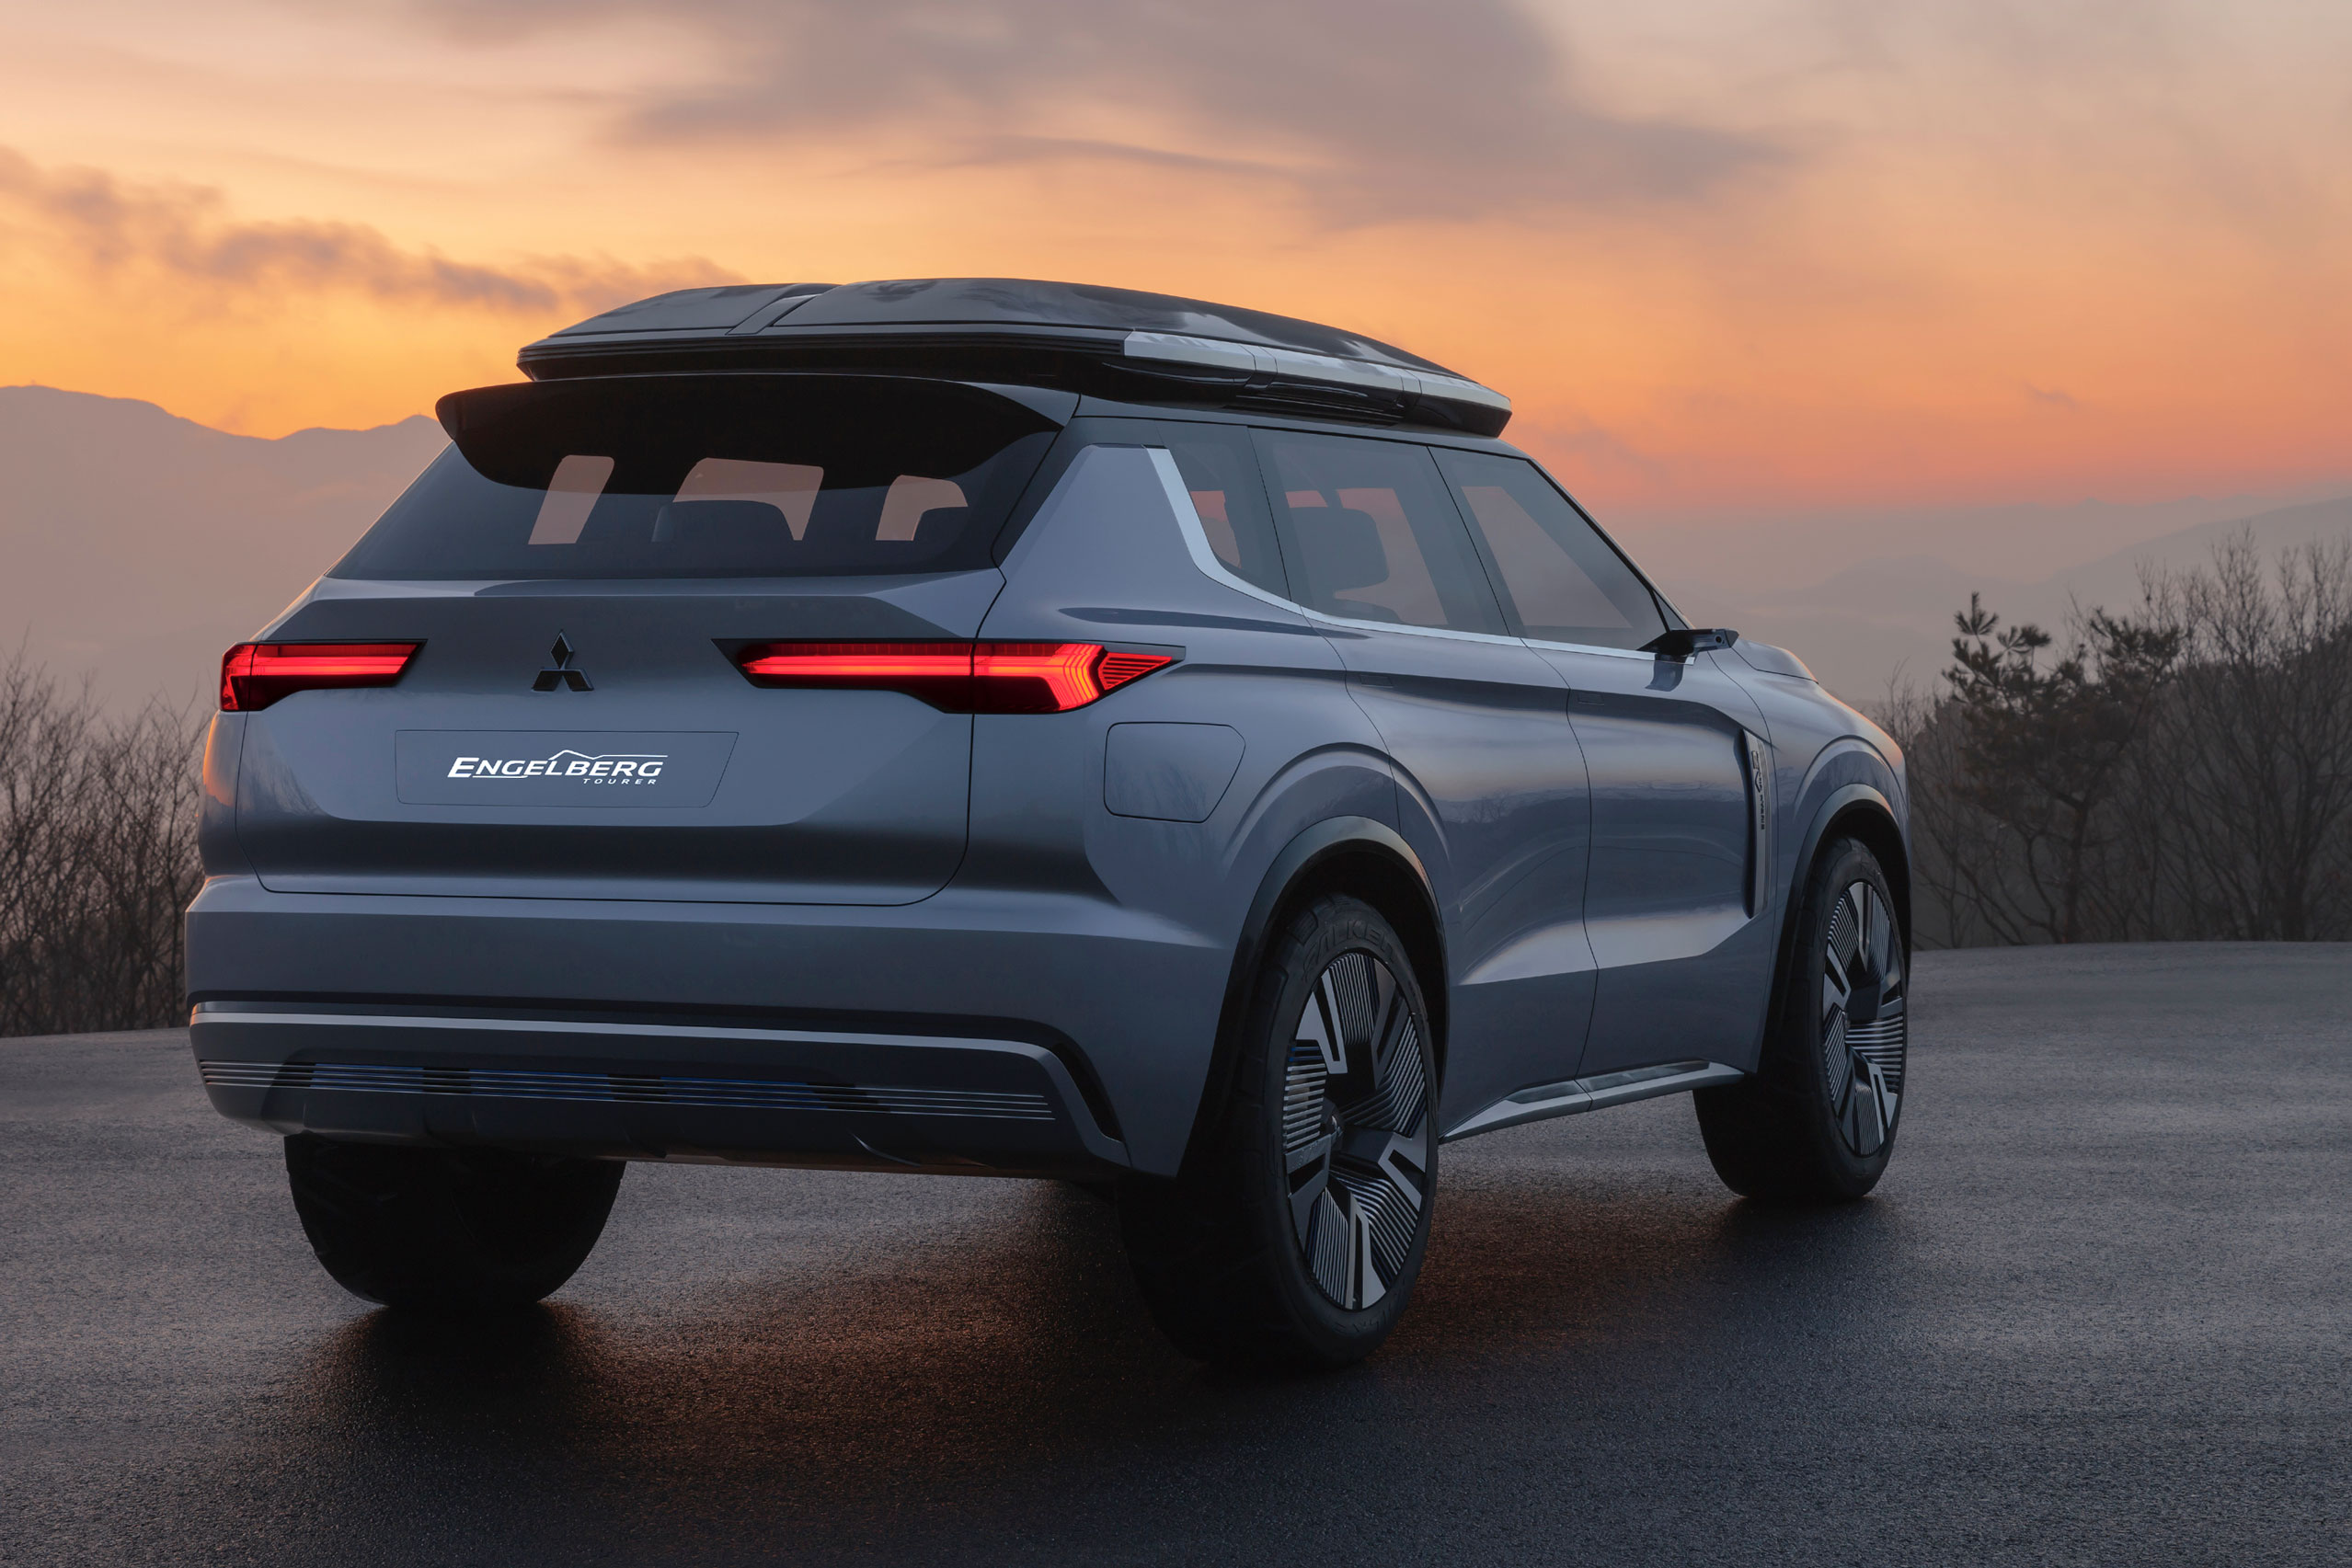 Mitsubishi Engleberg Tourer concept hybrid SUV tail lights at sunset